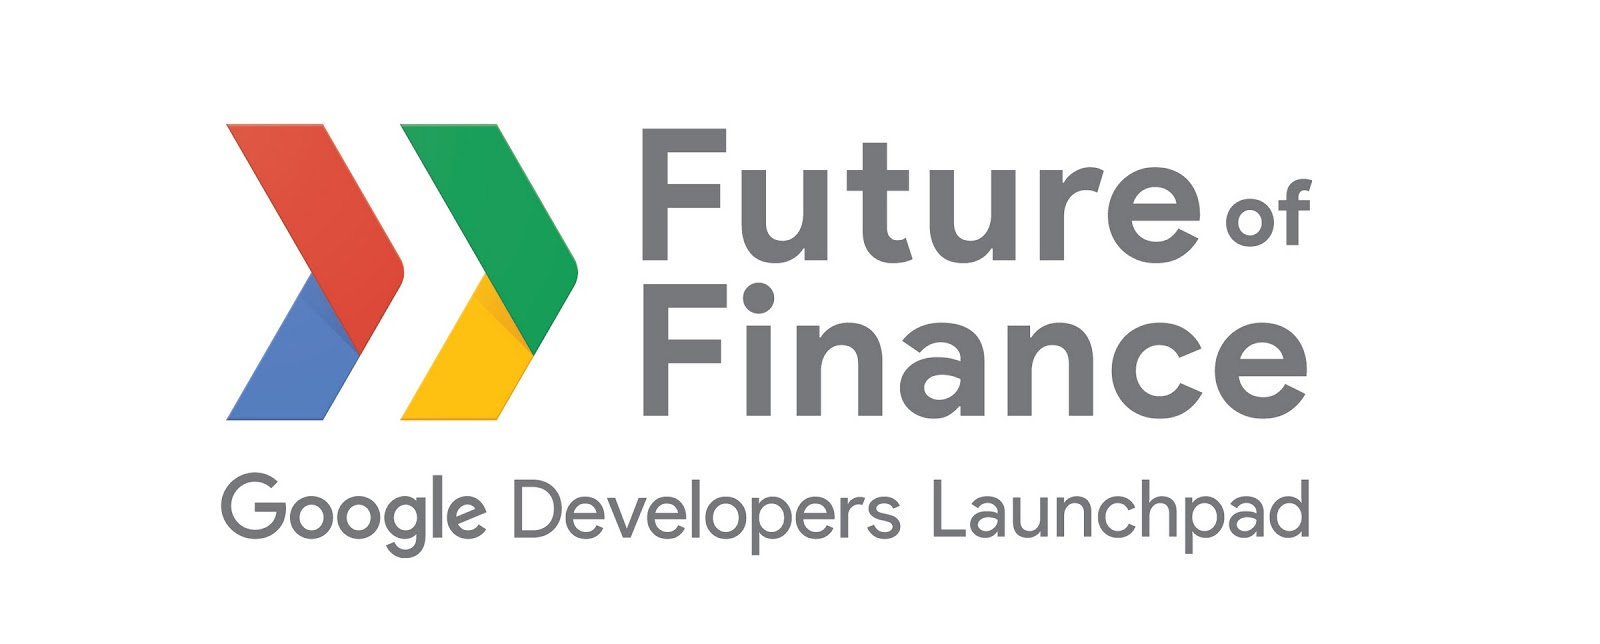 Google Developers Blog: This is the Future of Finance